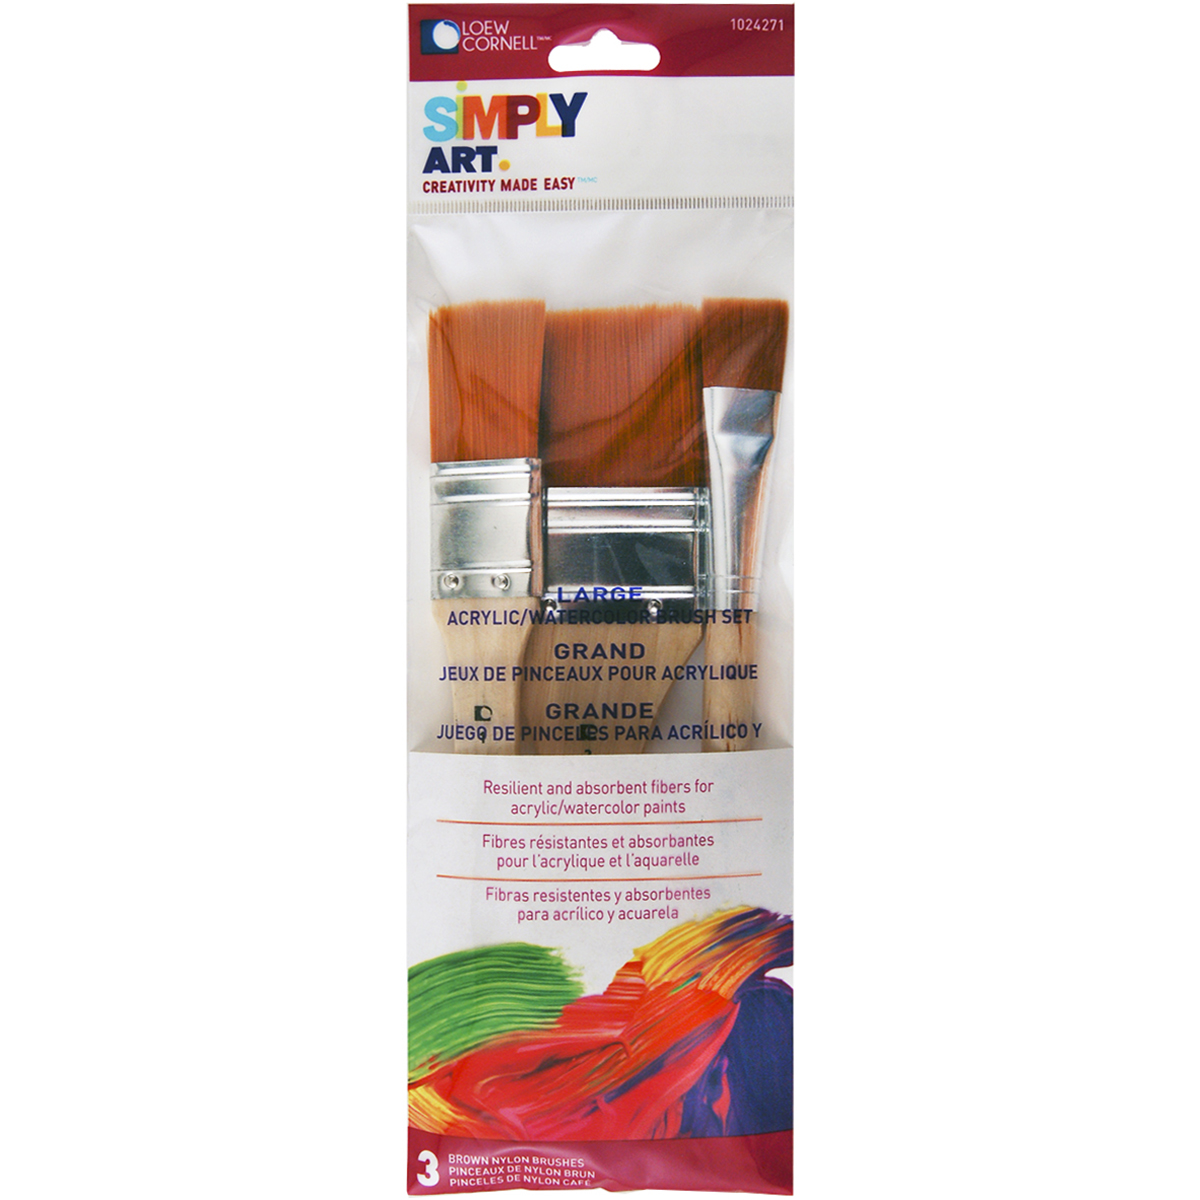 "Simply Art Large Nylon Flat Brush 3/Set-3/4"", 1"", & 2"""